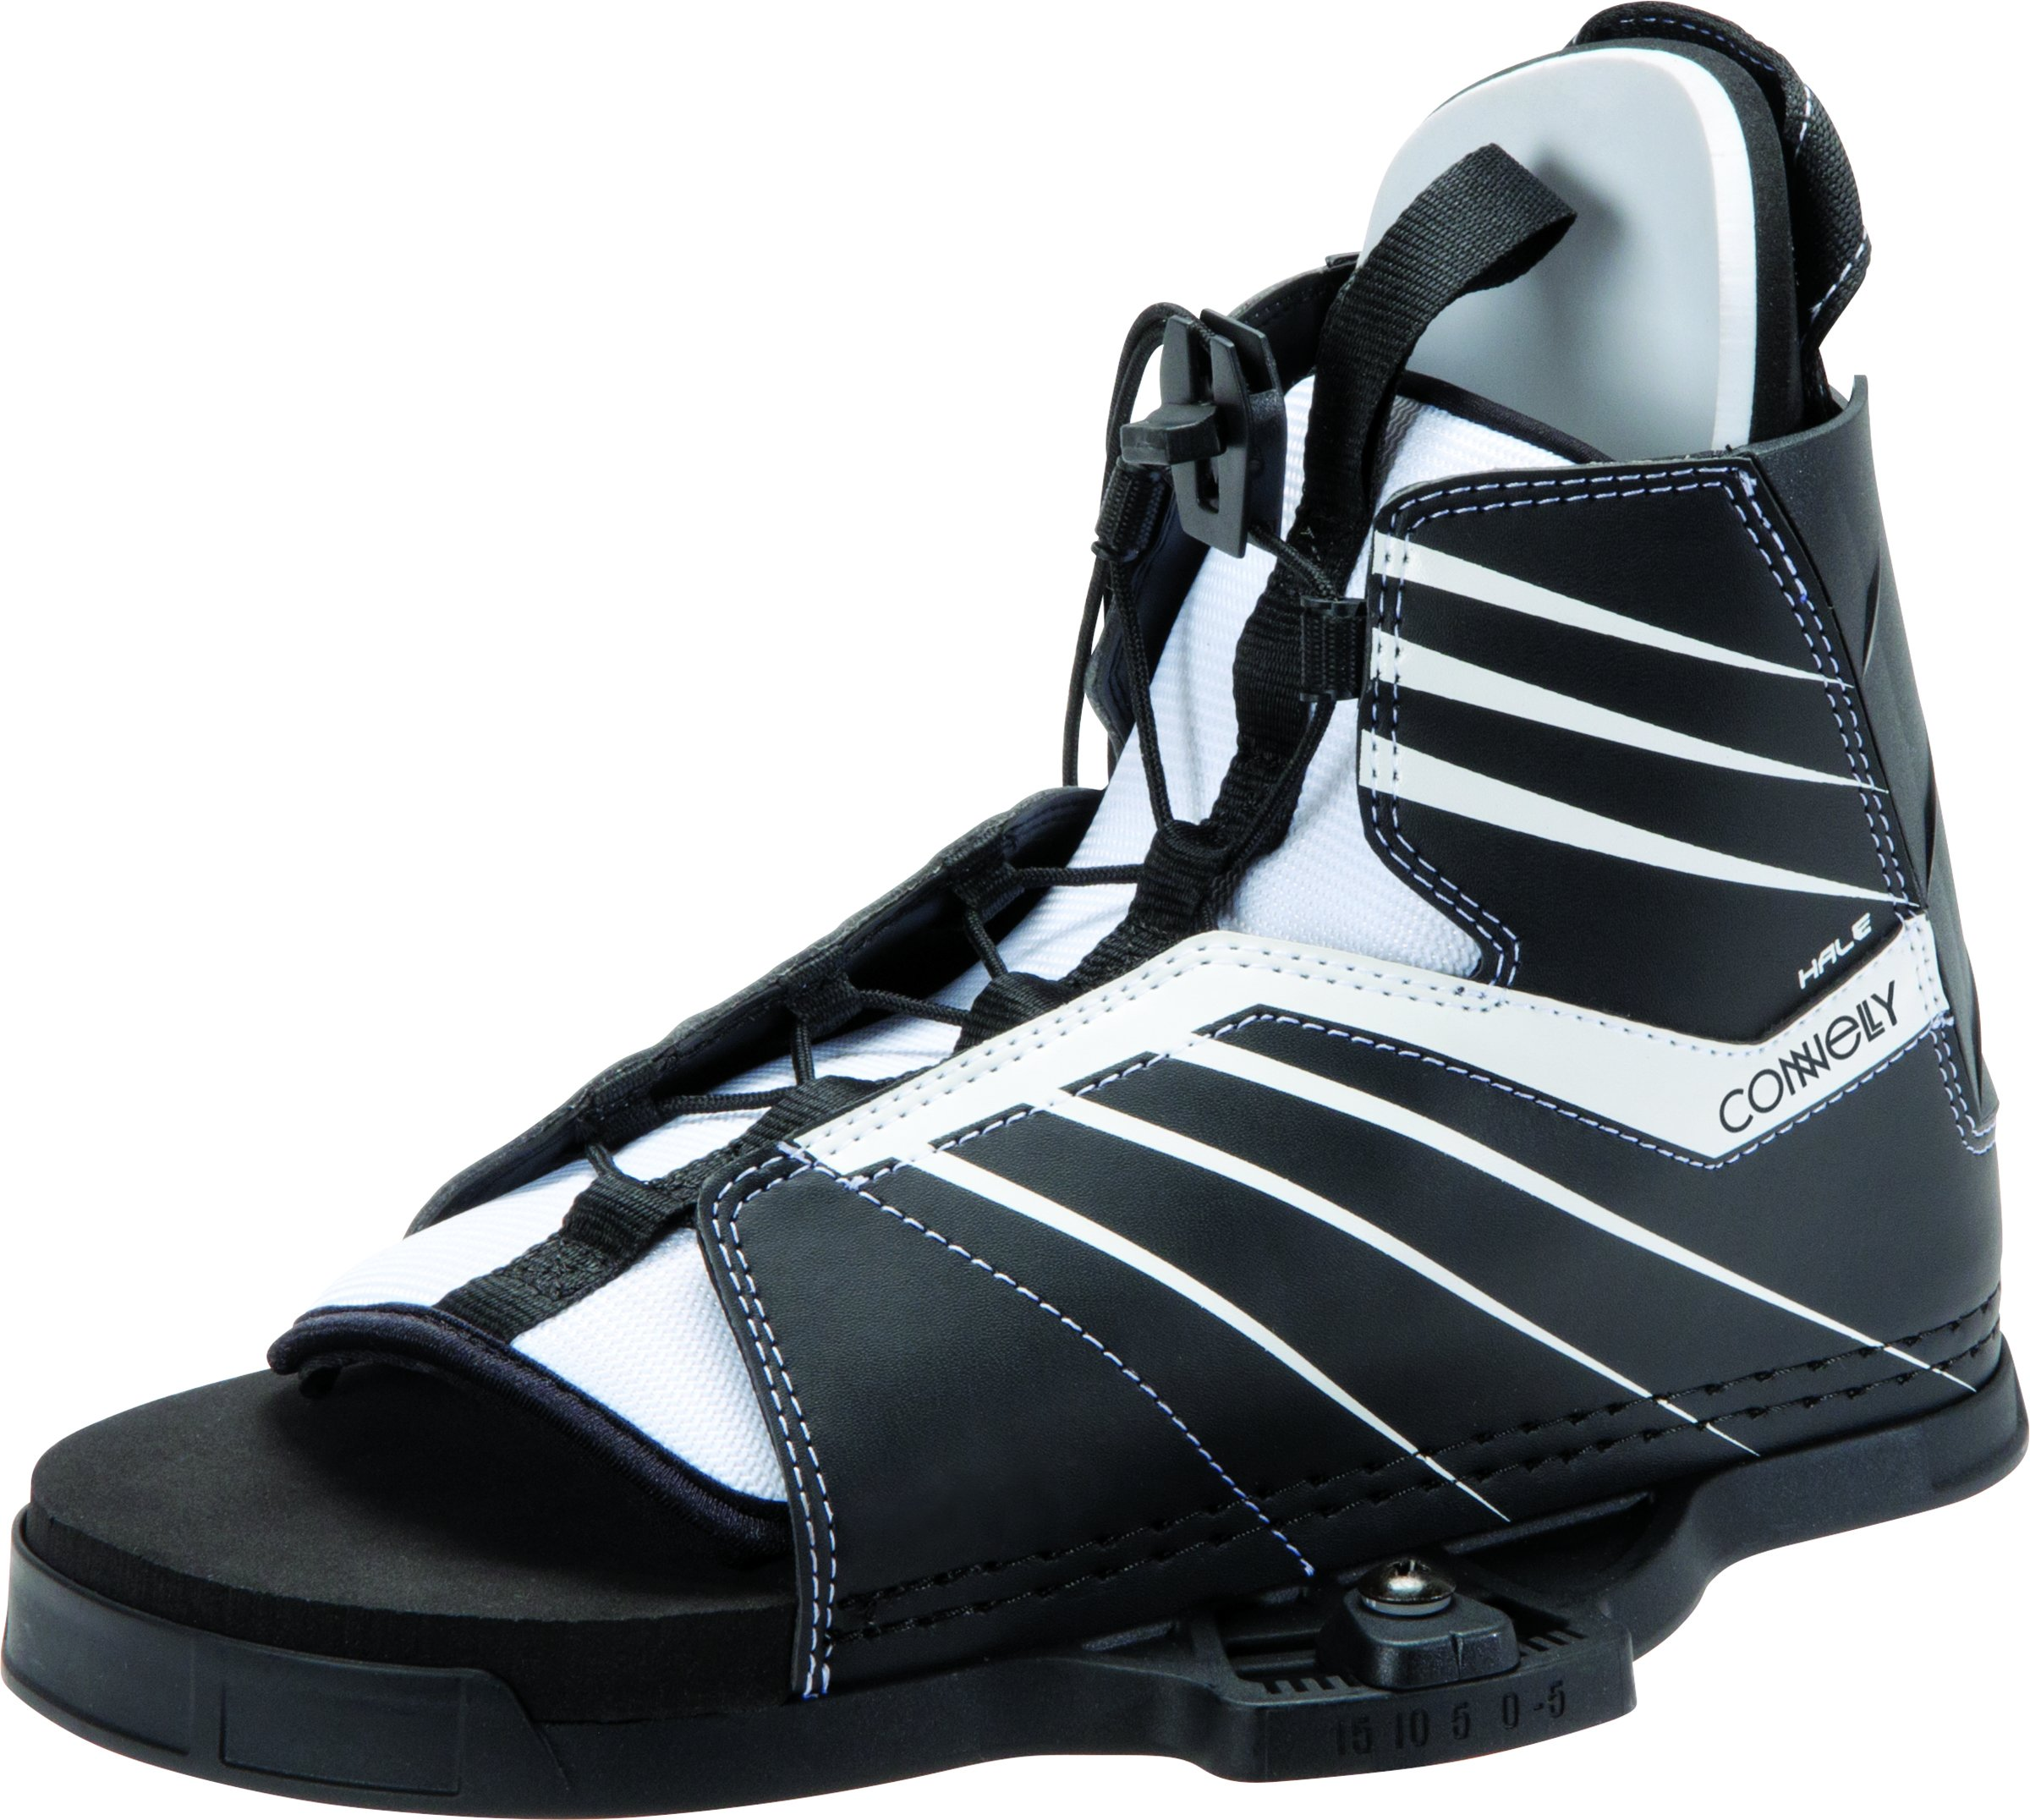 Connelly 2015 Hale Bindings Wakeboard for Age (5-13), One Size by CWB